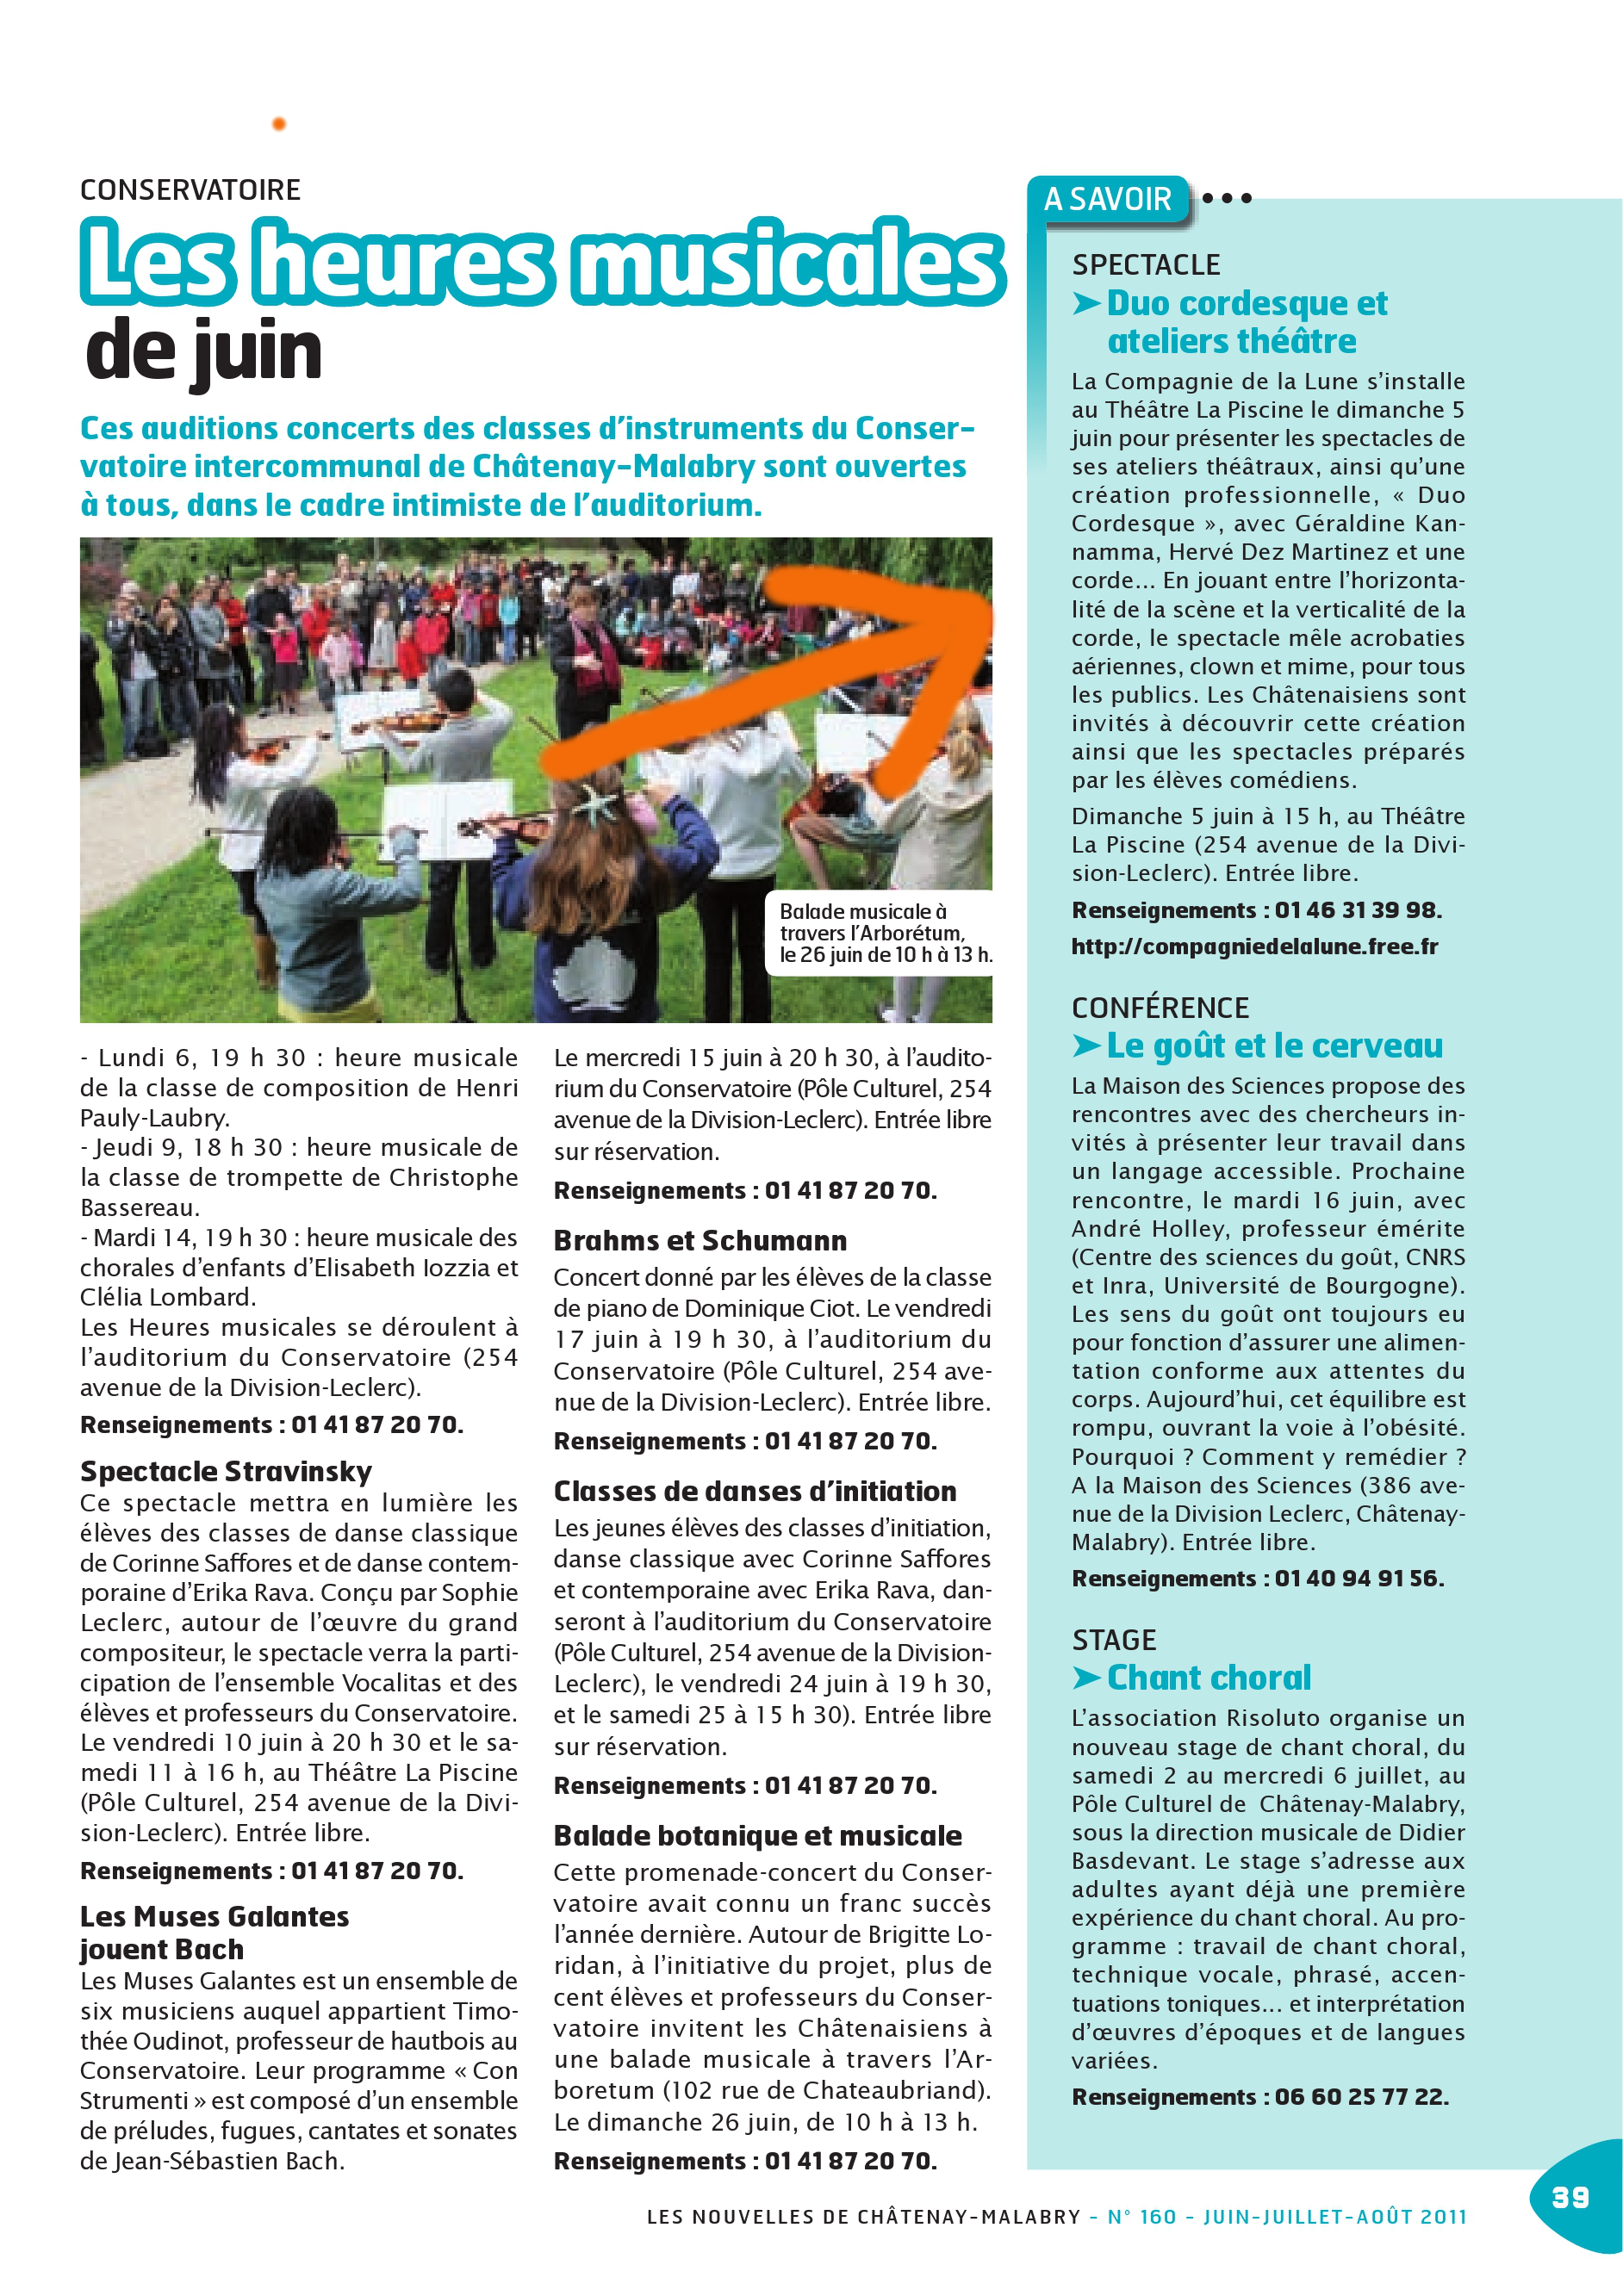 Article DUO 5 Juin 2011